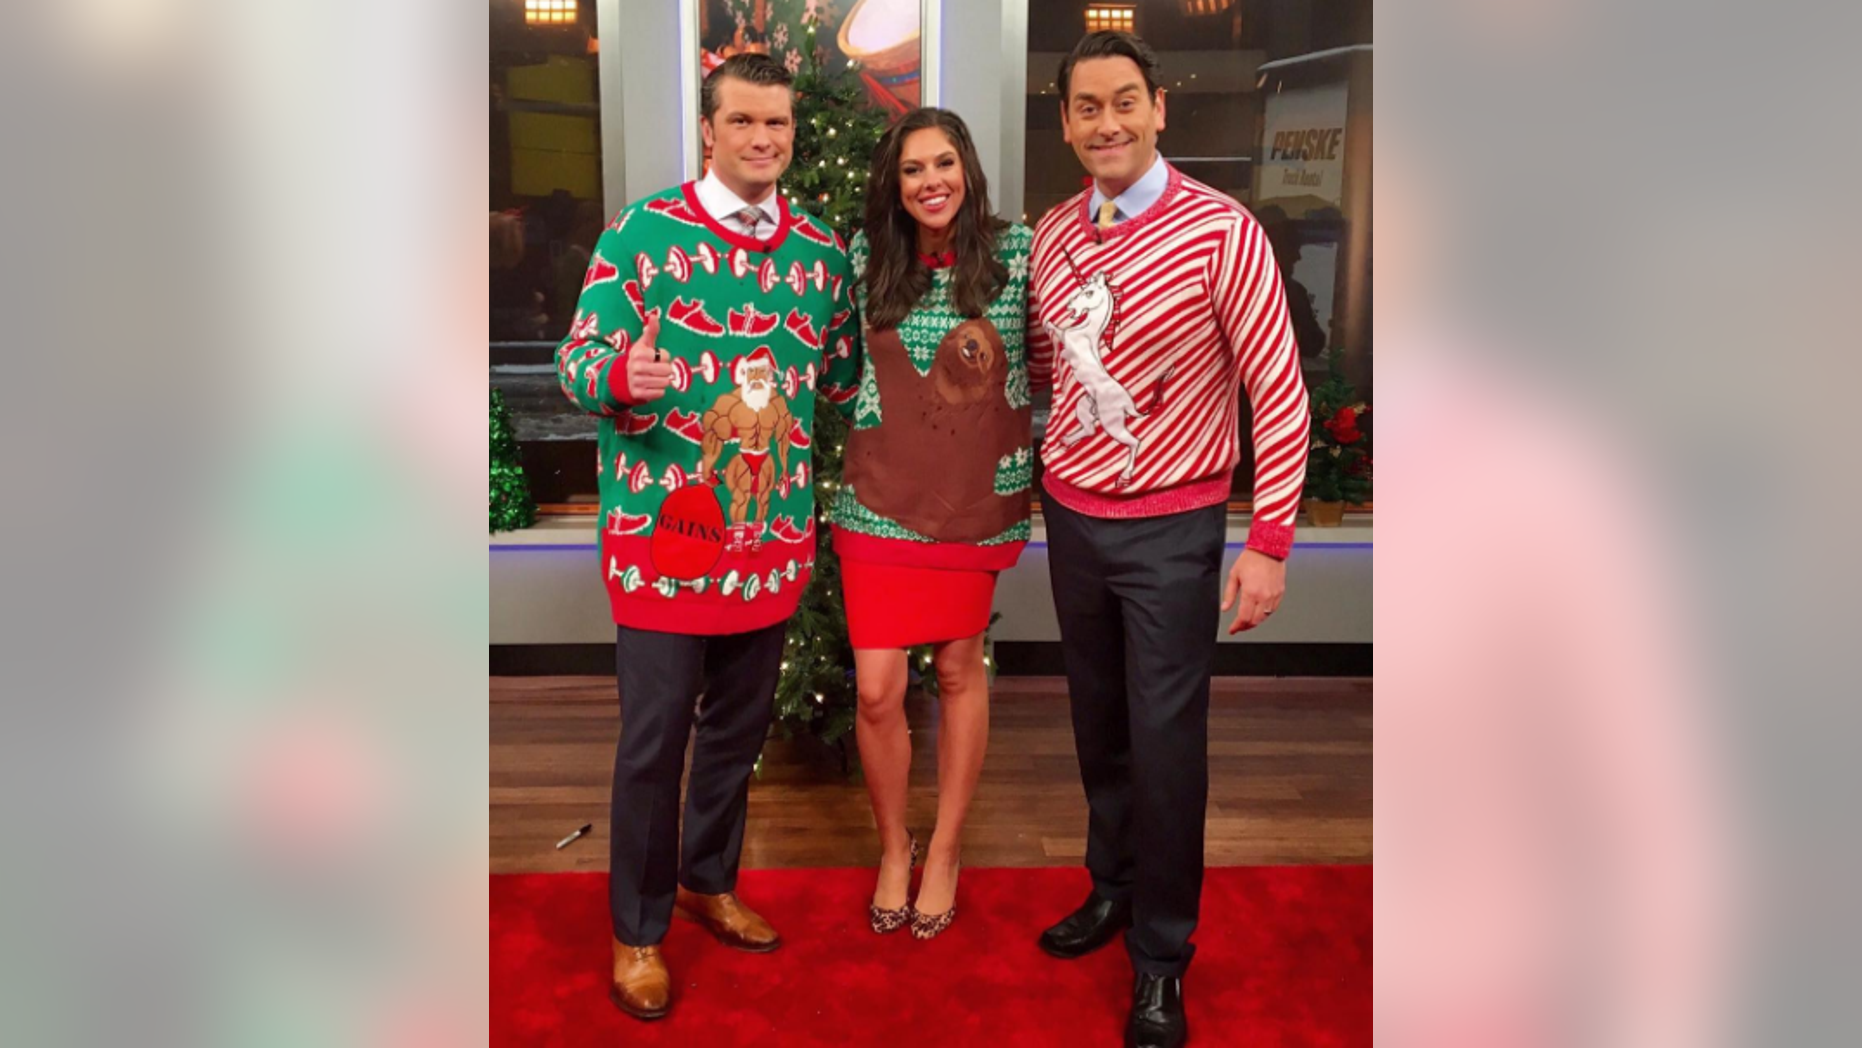 from the company my ugly christmas sweater is a resource in finding the perfect christmas or hanukkah sweater for the holiday season - My Ugly Christmas Sweater